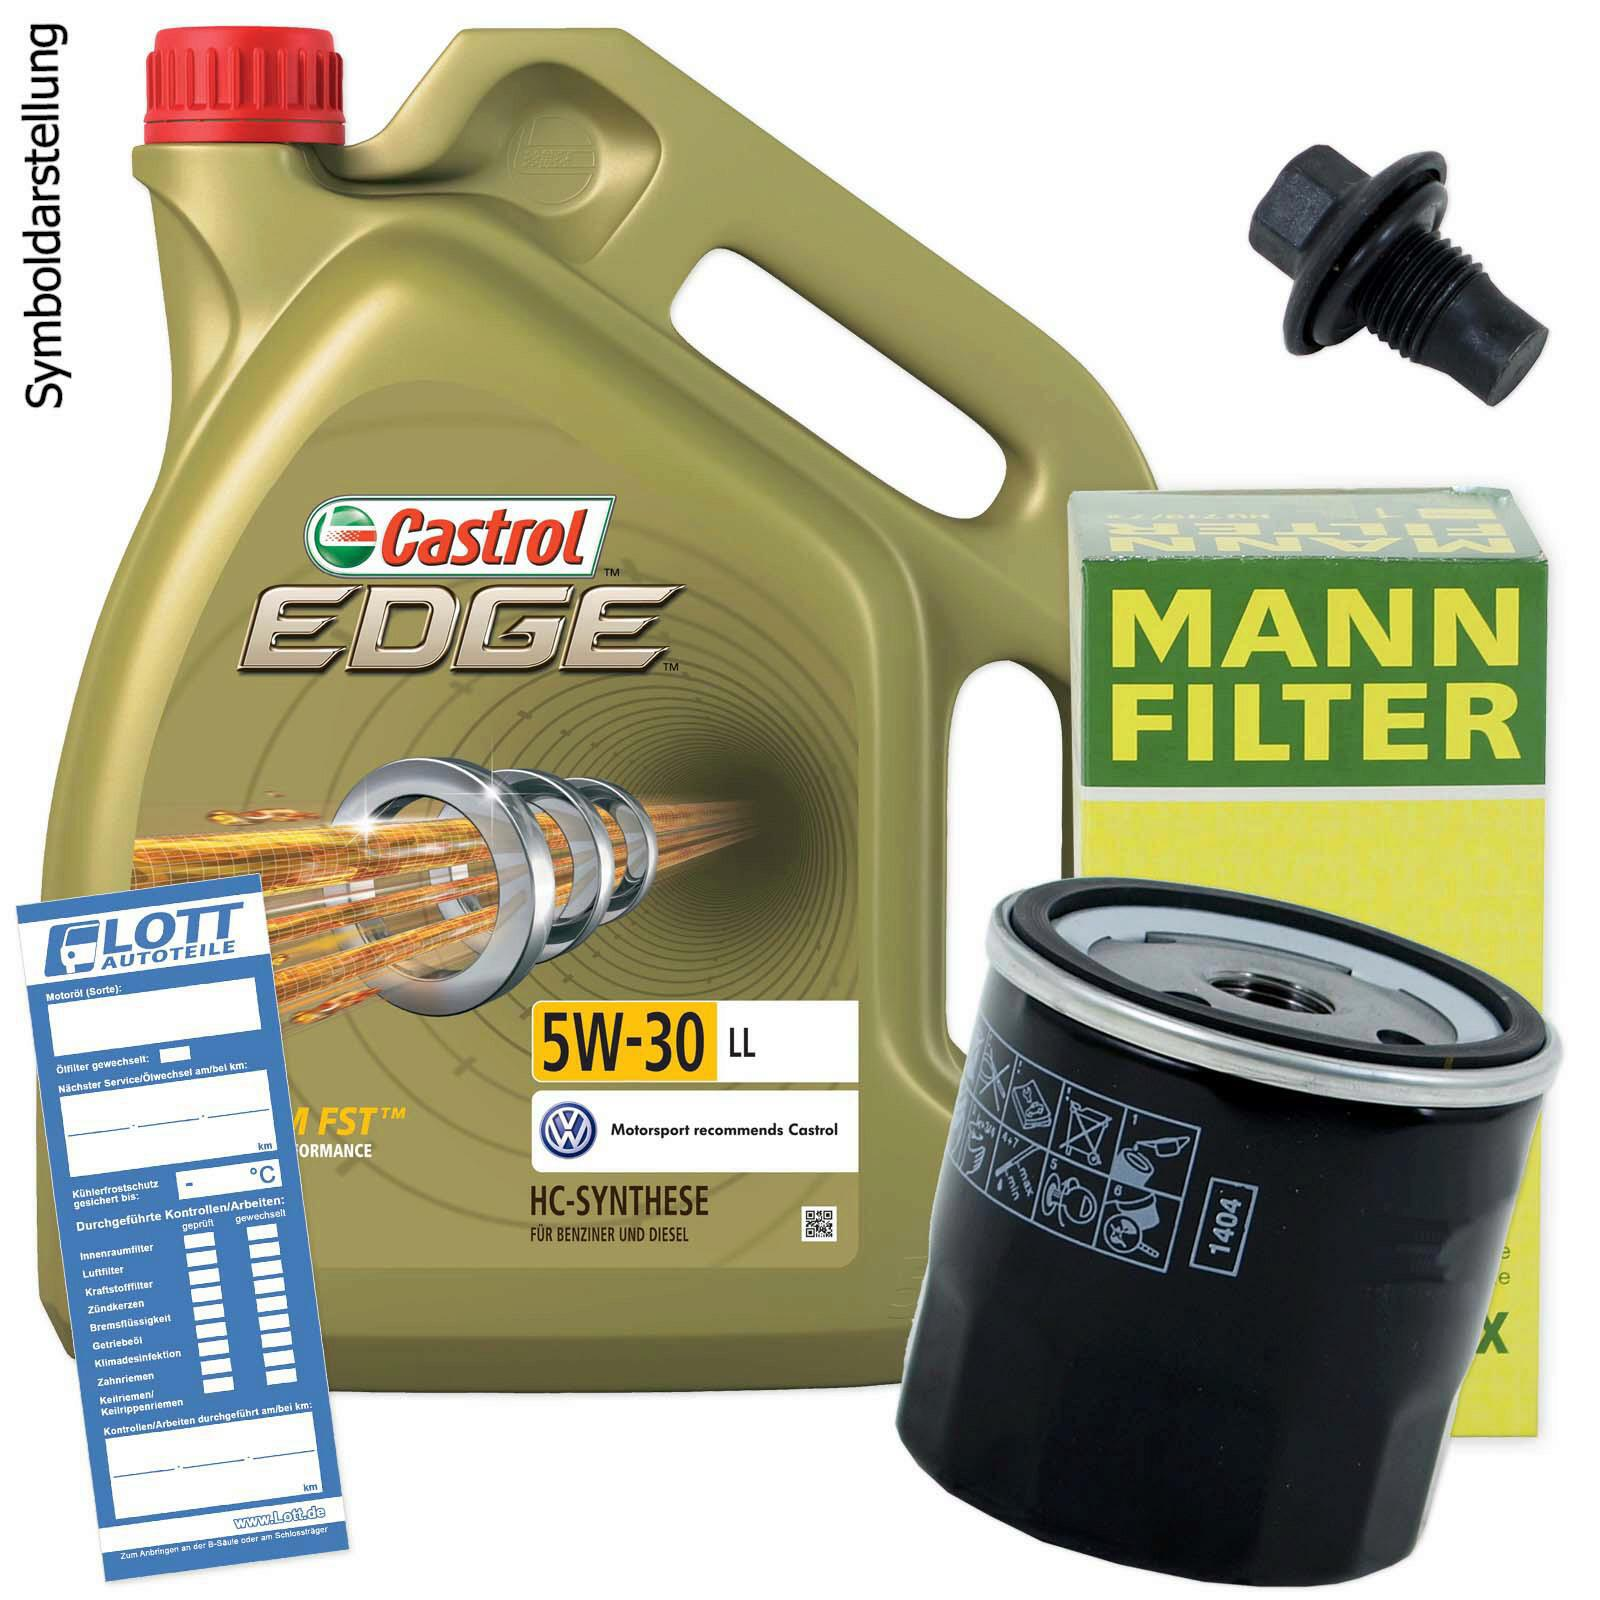 lwechsel set 5l 5w30 l motor l castrol mann lfilter ablassschraube a9100053mannc lott. Black Bedroom Furniture Sets. Home Design Ideas